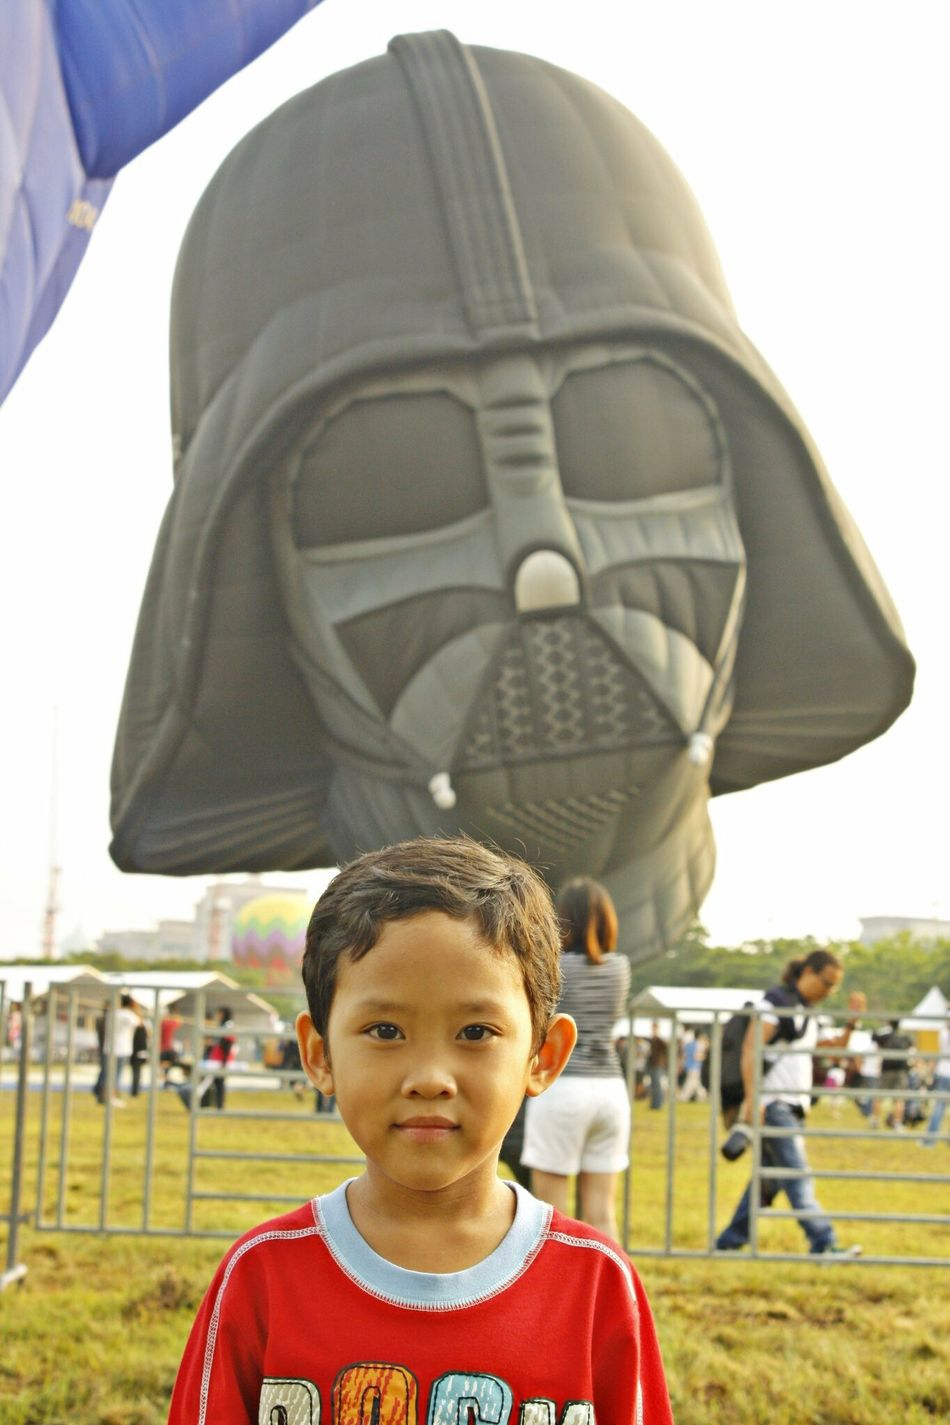 The Force Looking At Camera Real People Portrait One Person Standing Lifestyles Childhood Leisure Activity Outdoors Day Smiling Sky Close-up Darthvader Darth Starwars Hot Air Balloon Festival Starwarsfan Star Wars Day Balloonfiesta  Jedi Lukeskywalker